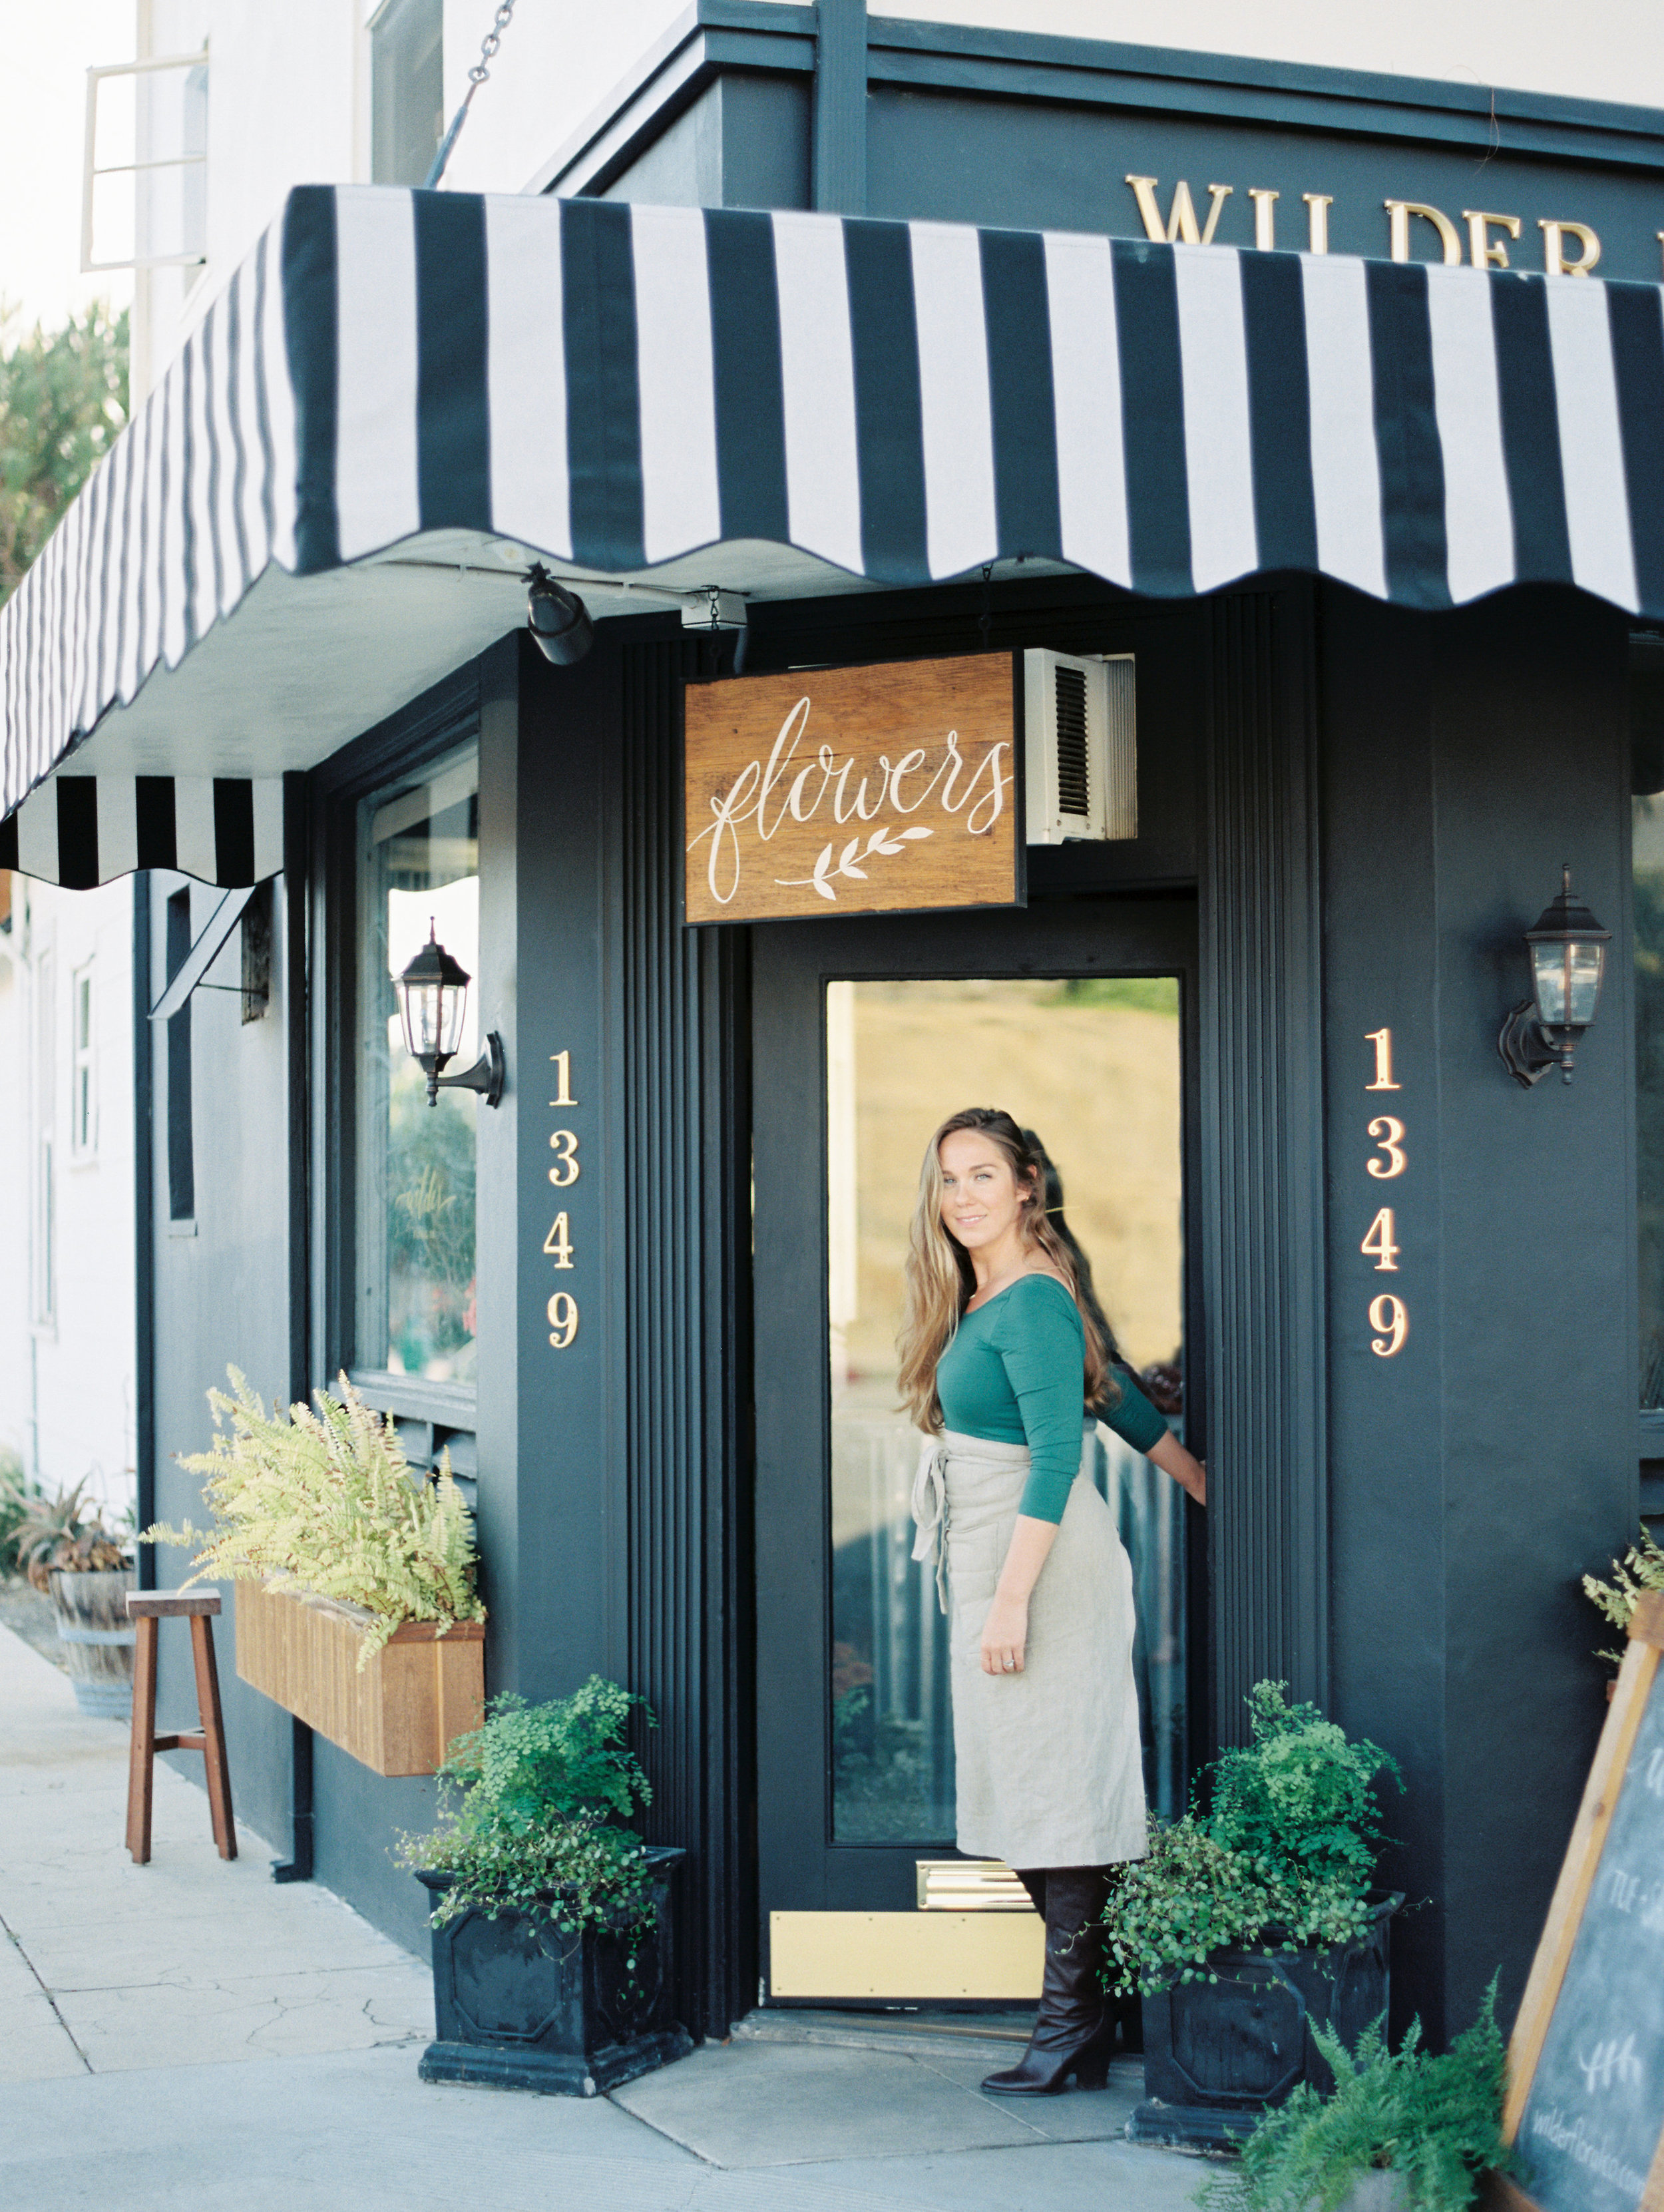 Wilder Floral Co. is the artisan brand and flower shop of California designer Asha Renew.